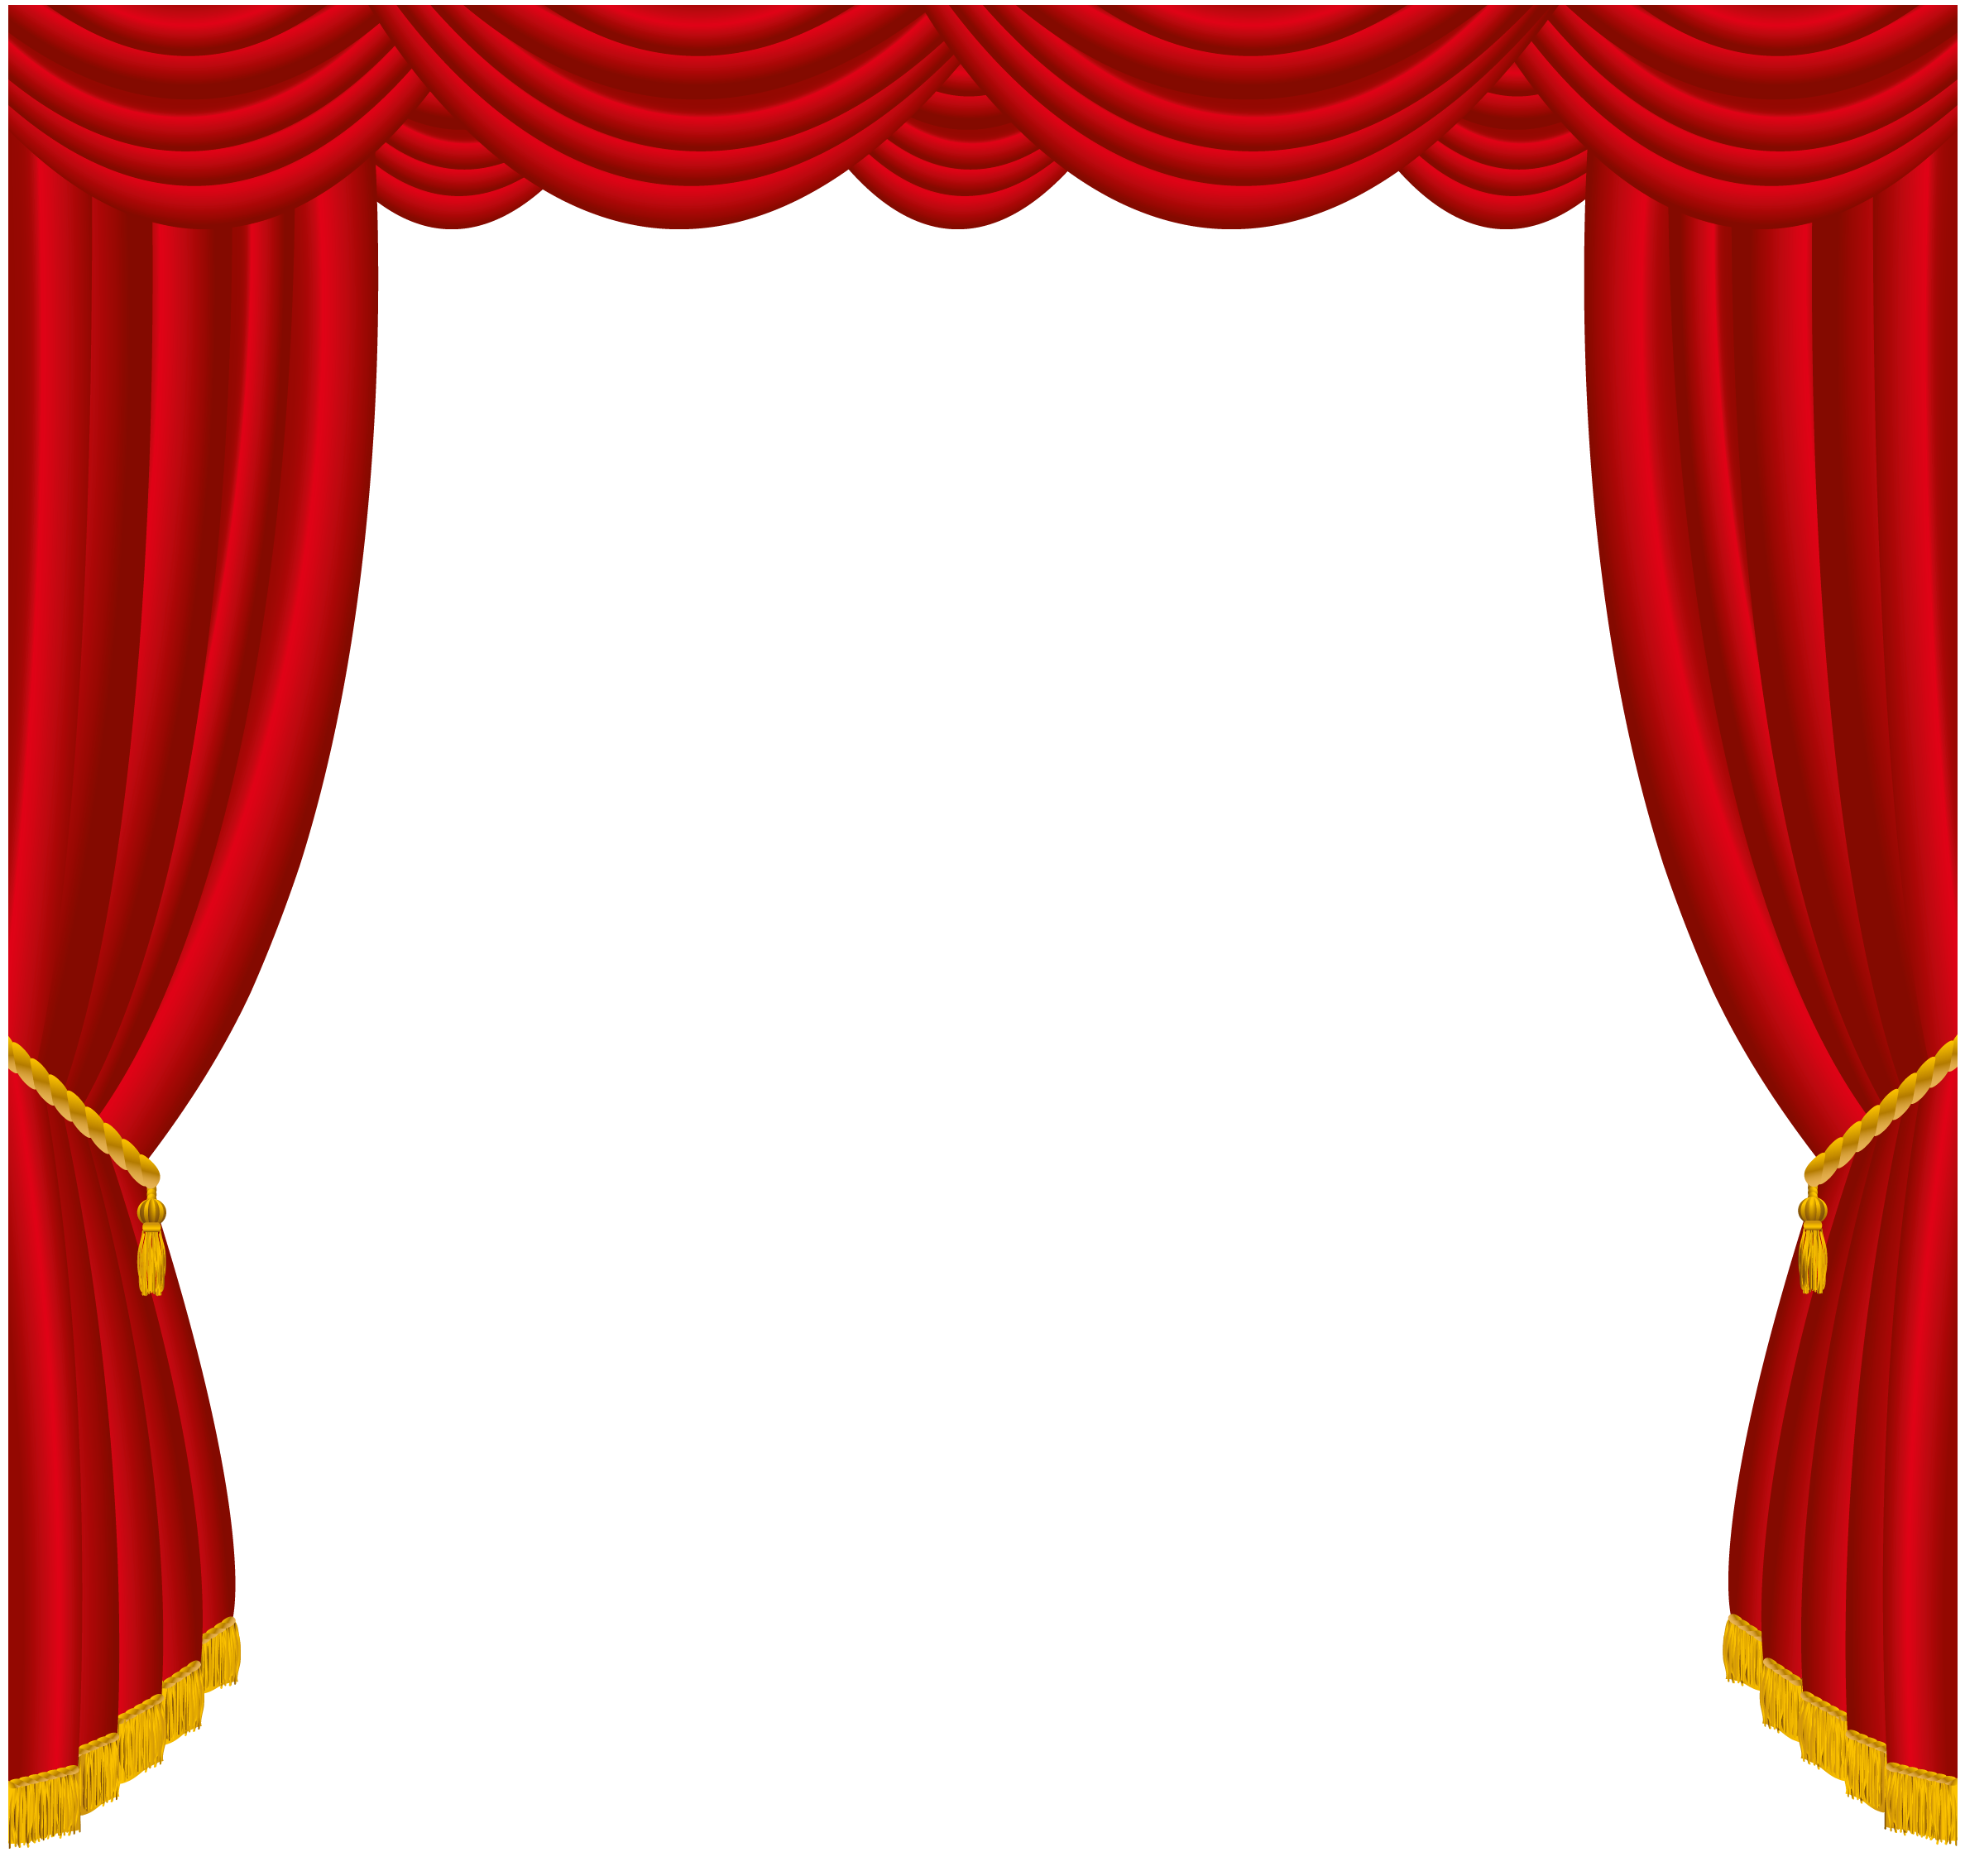 Theatre curtains clipart theater curtain clipart clipart kid - Movie Curtain Clipart Clipart Suggest